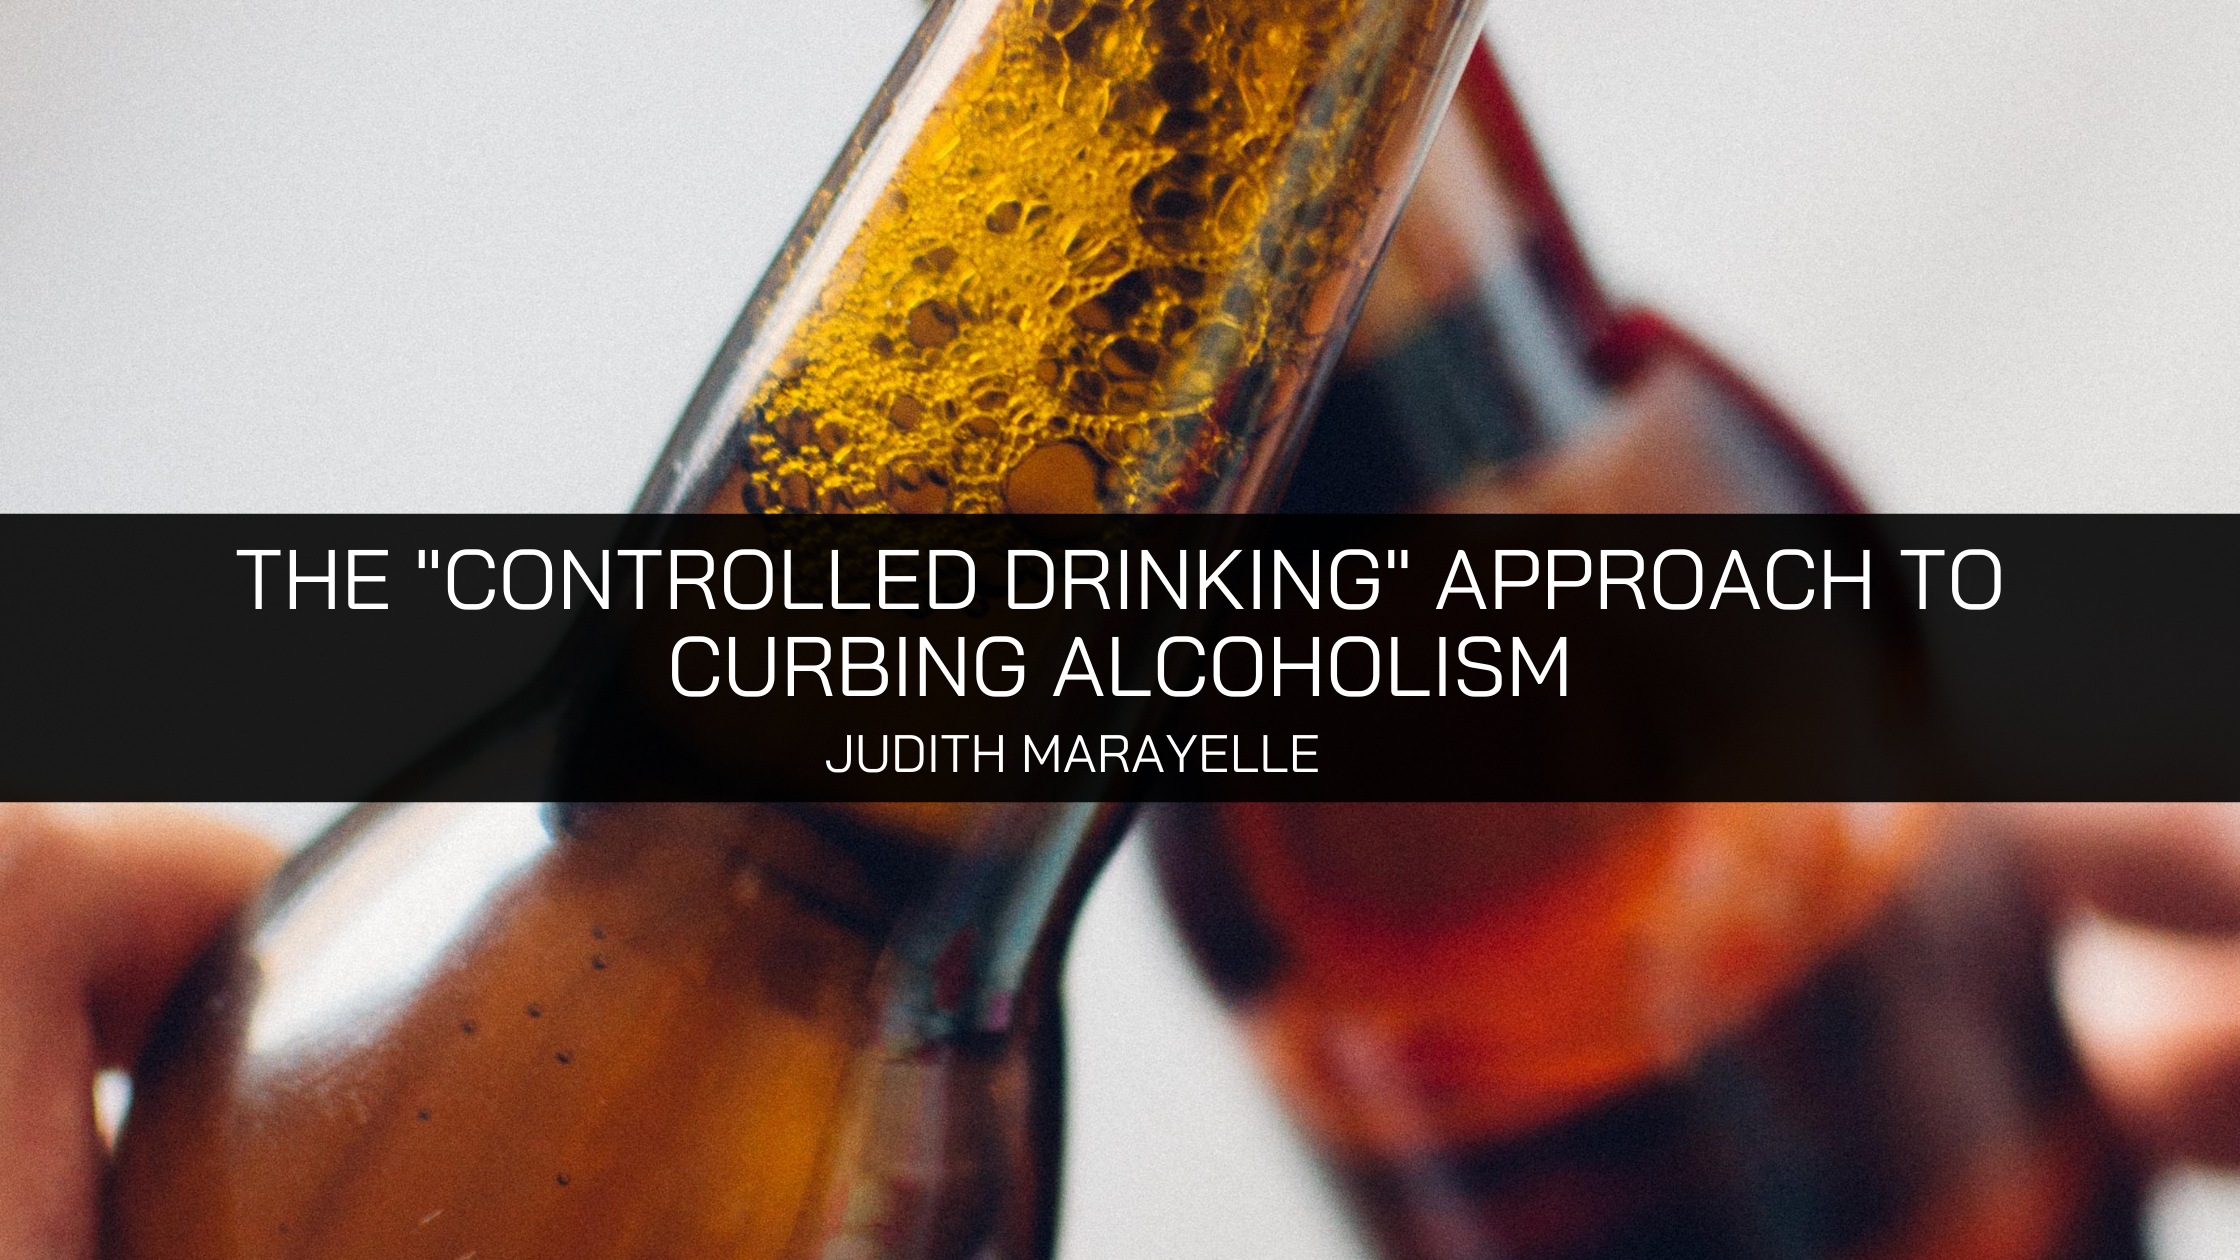 the _Controlled Drinking_ Approach to Curbing Alcoholism